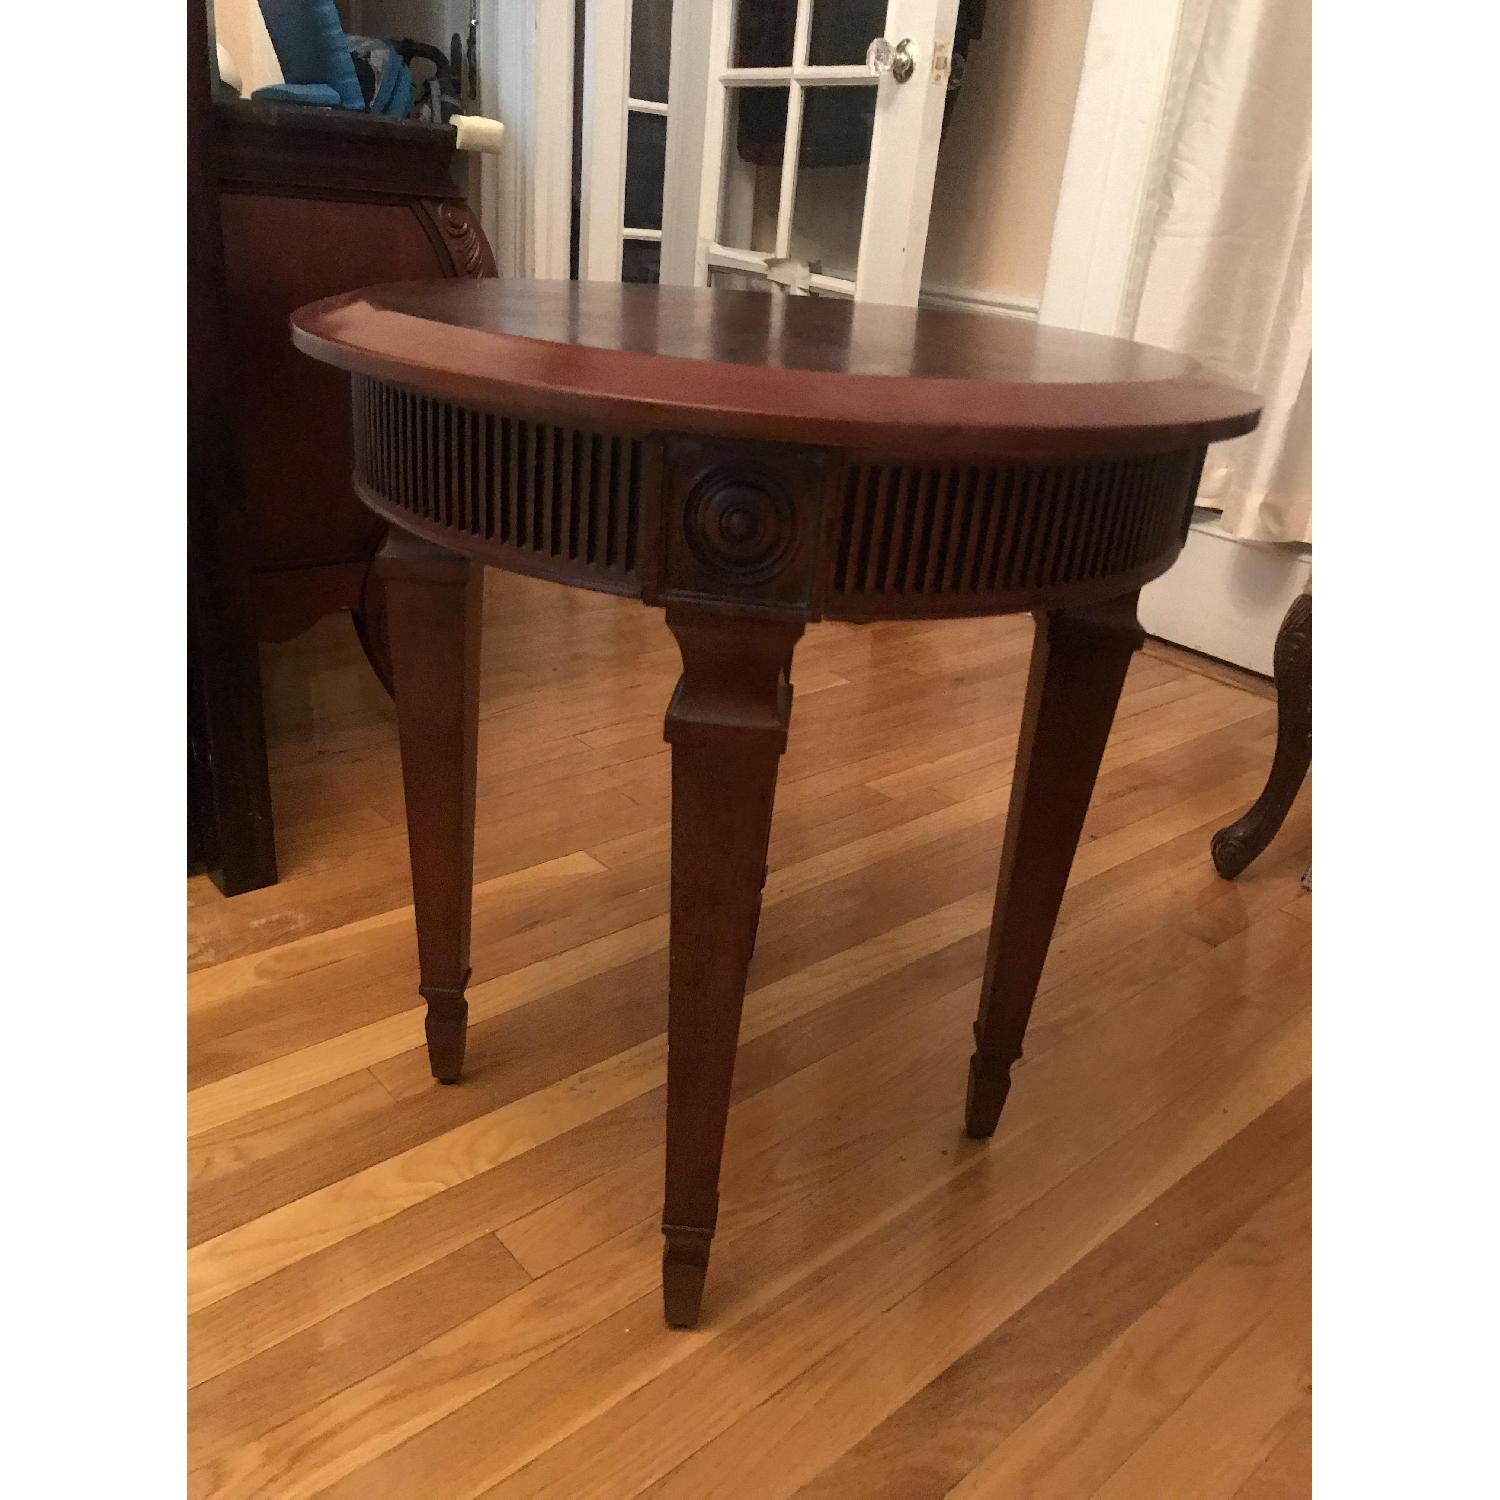 Bombay Company Antique-Style Side Tables - image-7